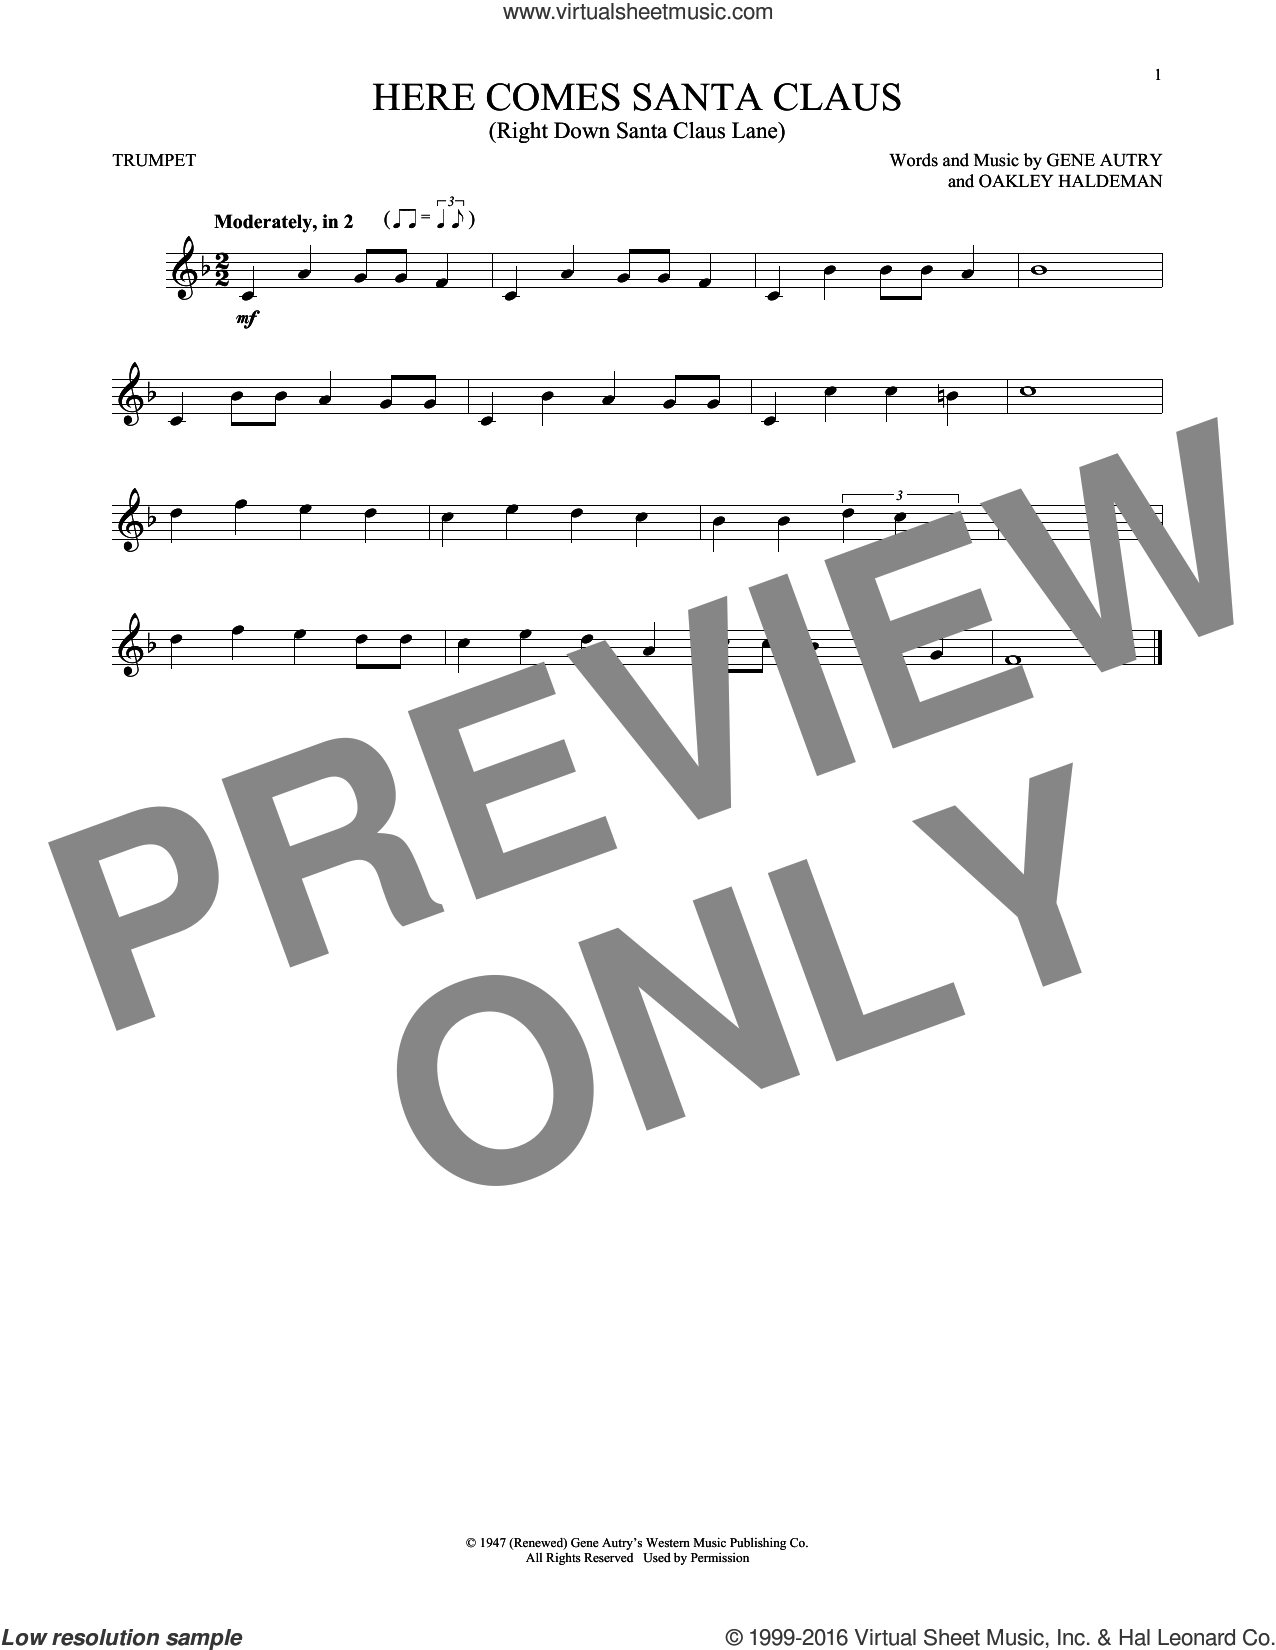 Here Comes Santa Claus (Right Down Santa Claus Lane) sheet music for trumpet solo by Oakley Haldeman